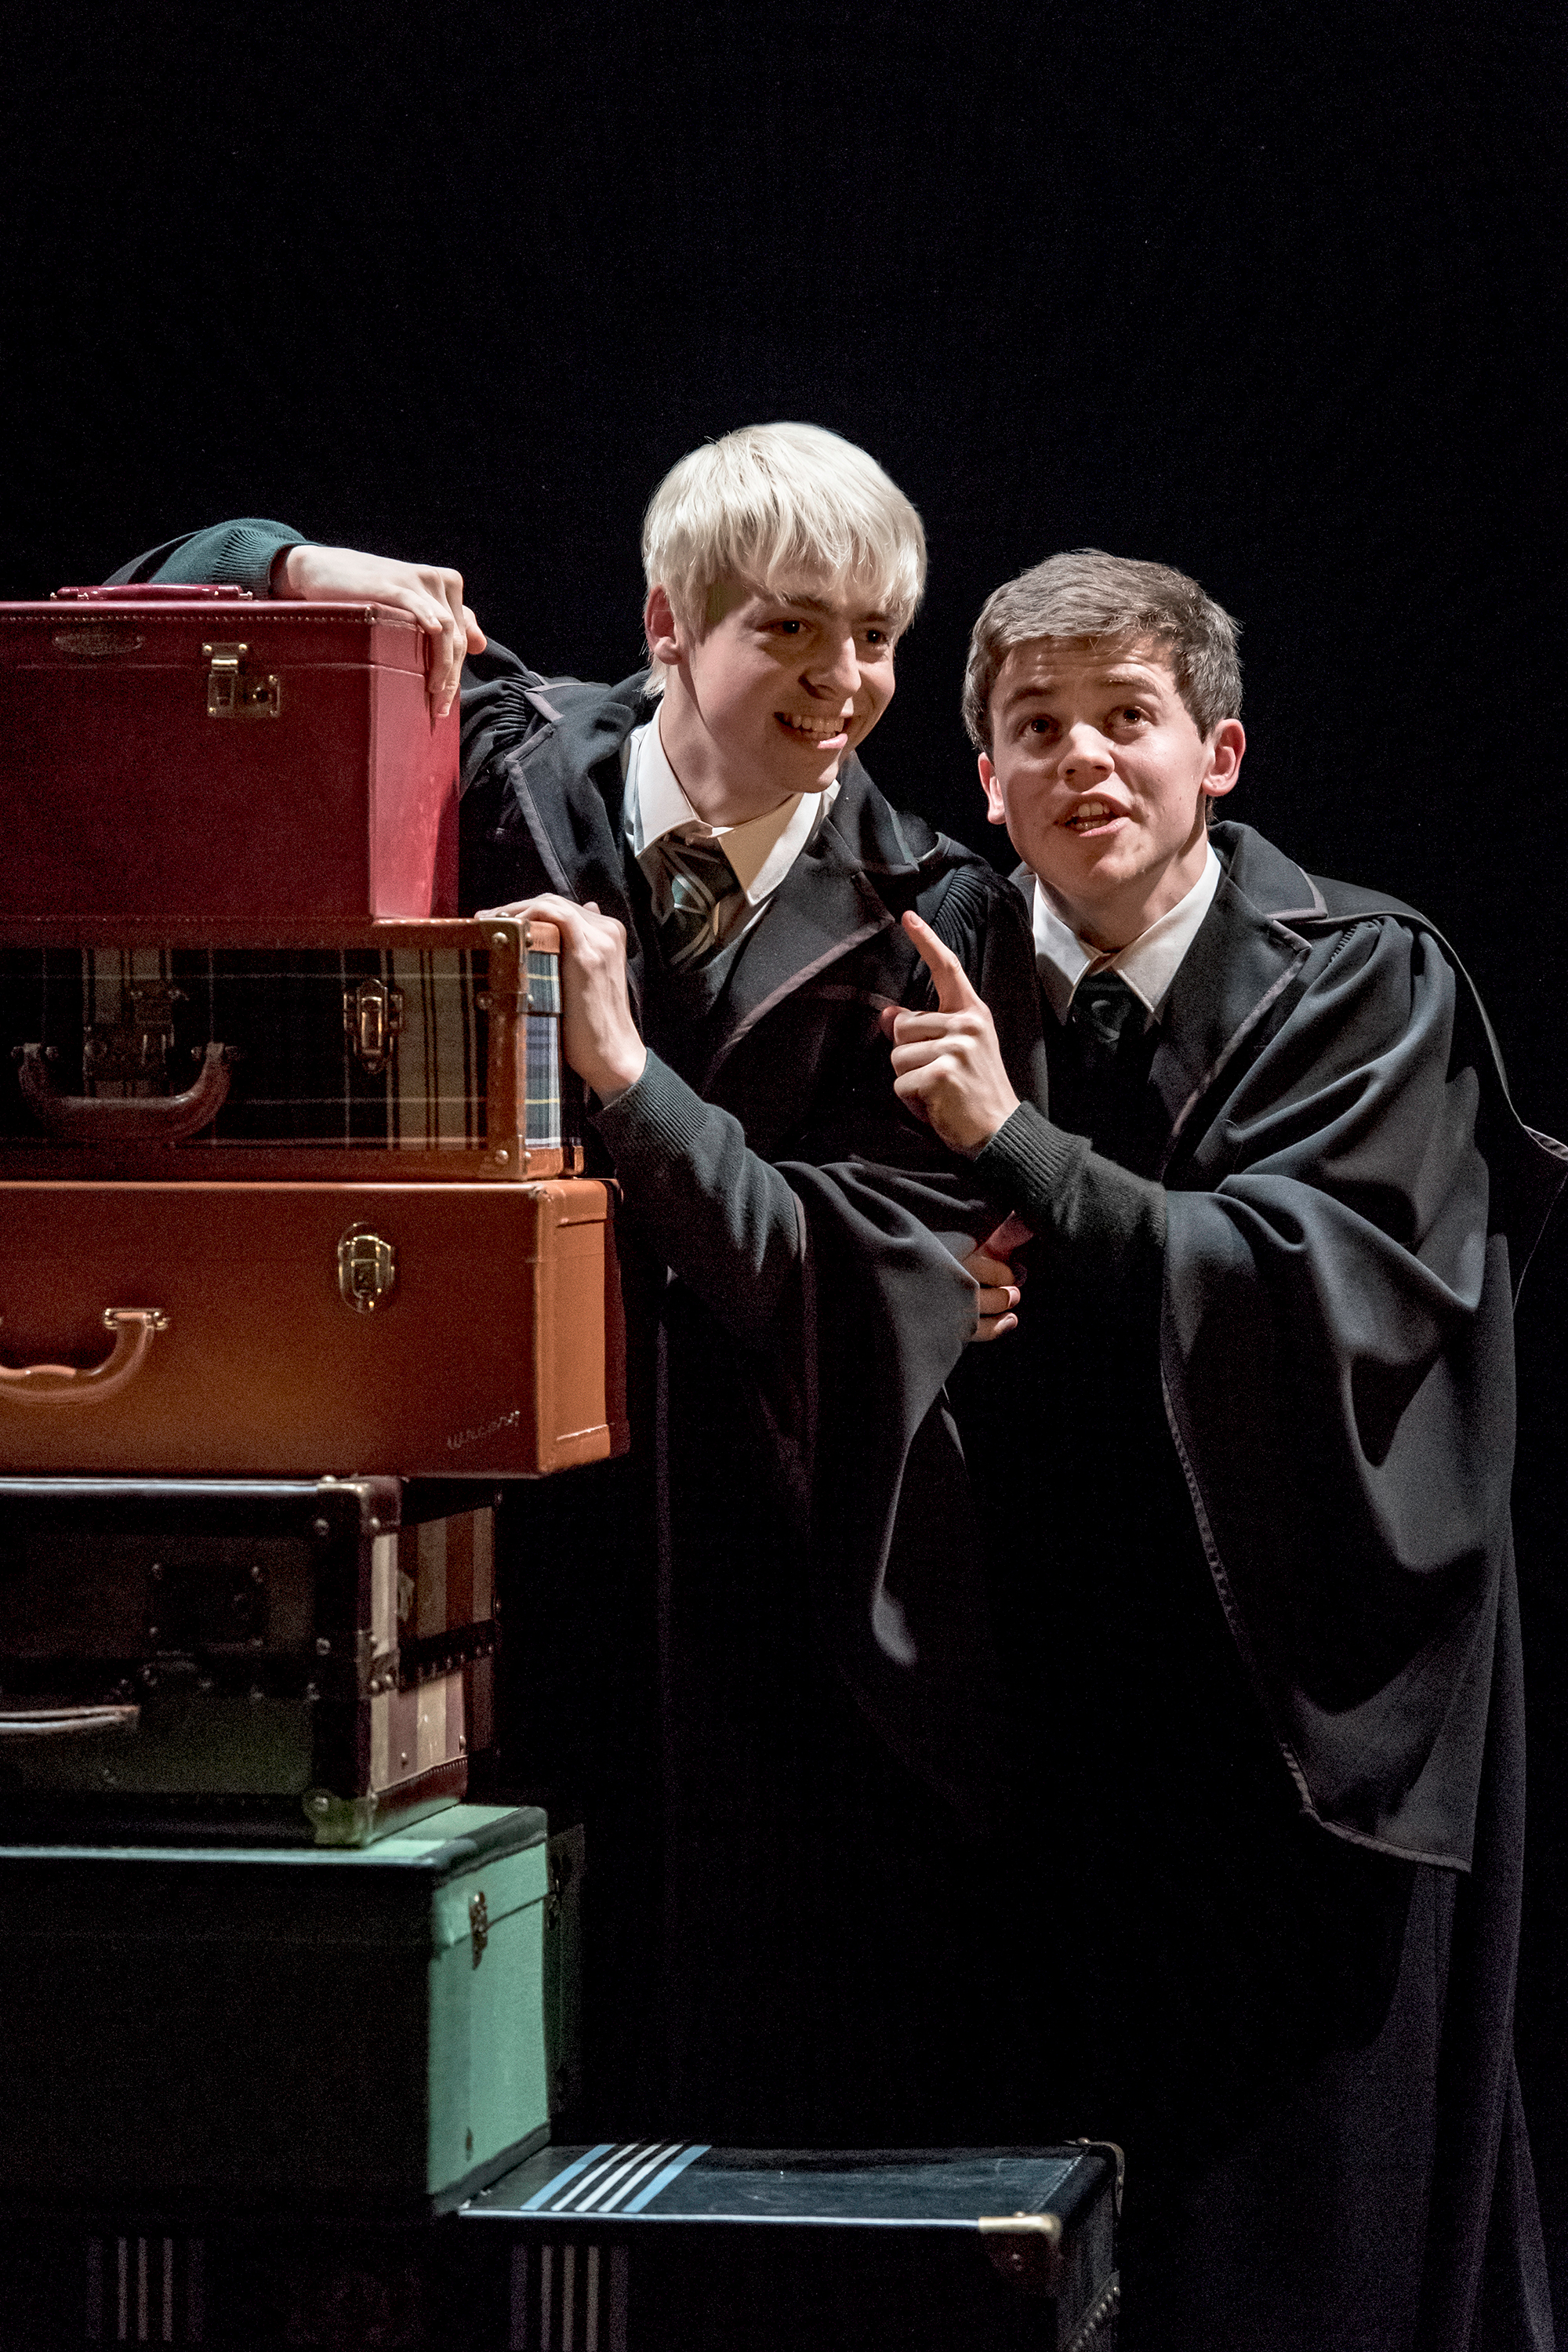 From left: Anthony Boyle as Scorpius Malfoy and Sam Clemmett as Albus Potter in Harry Potter and the Cursed Child.